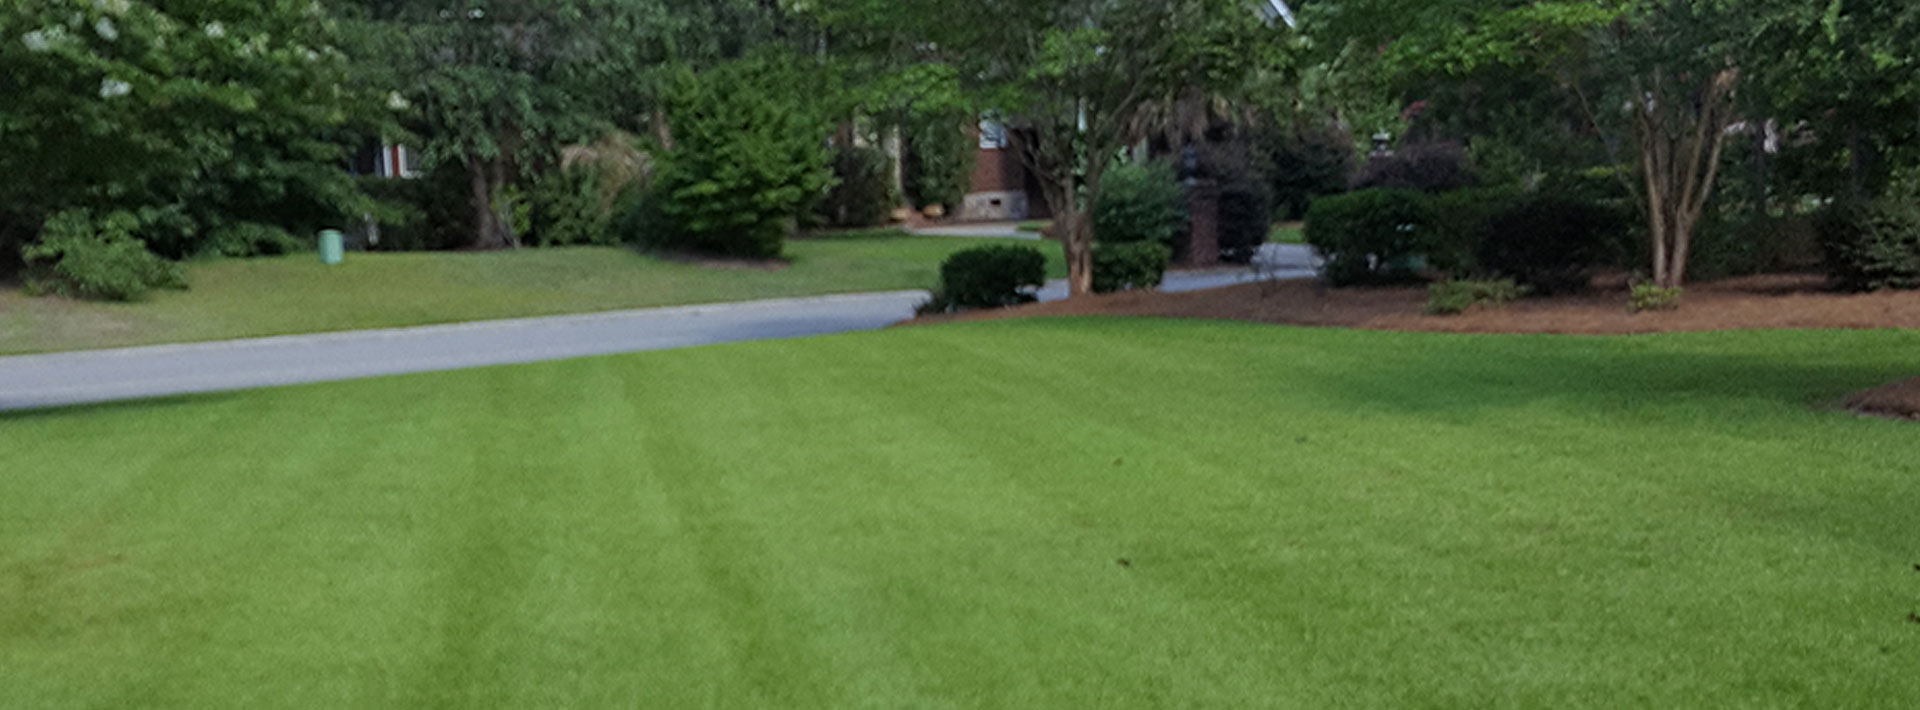 Roots Lawn Care Llc Is A Lawn Care Company Landscape